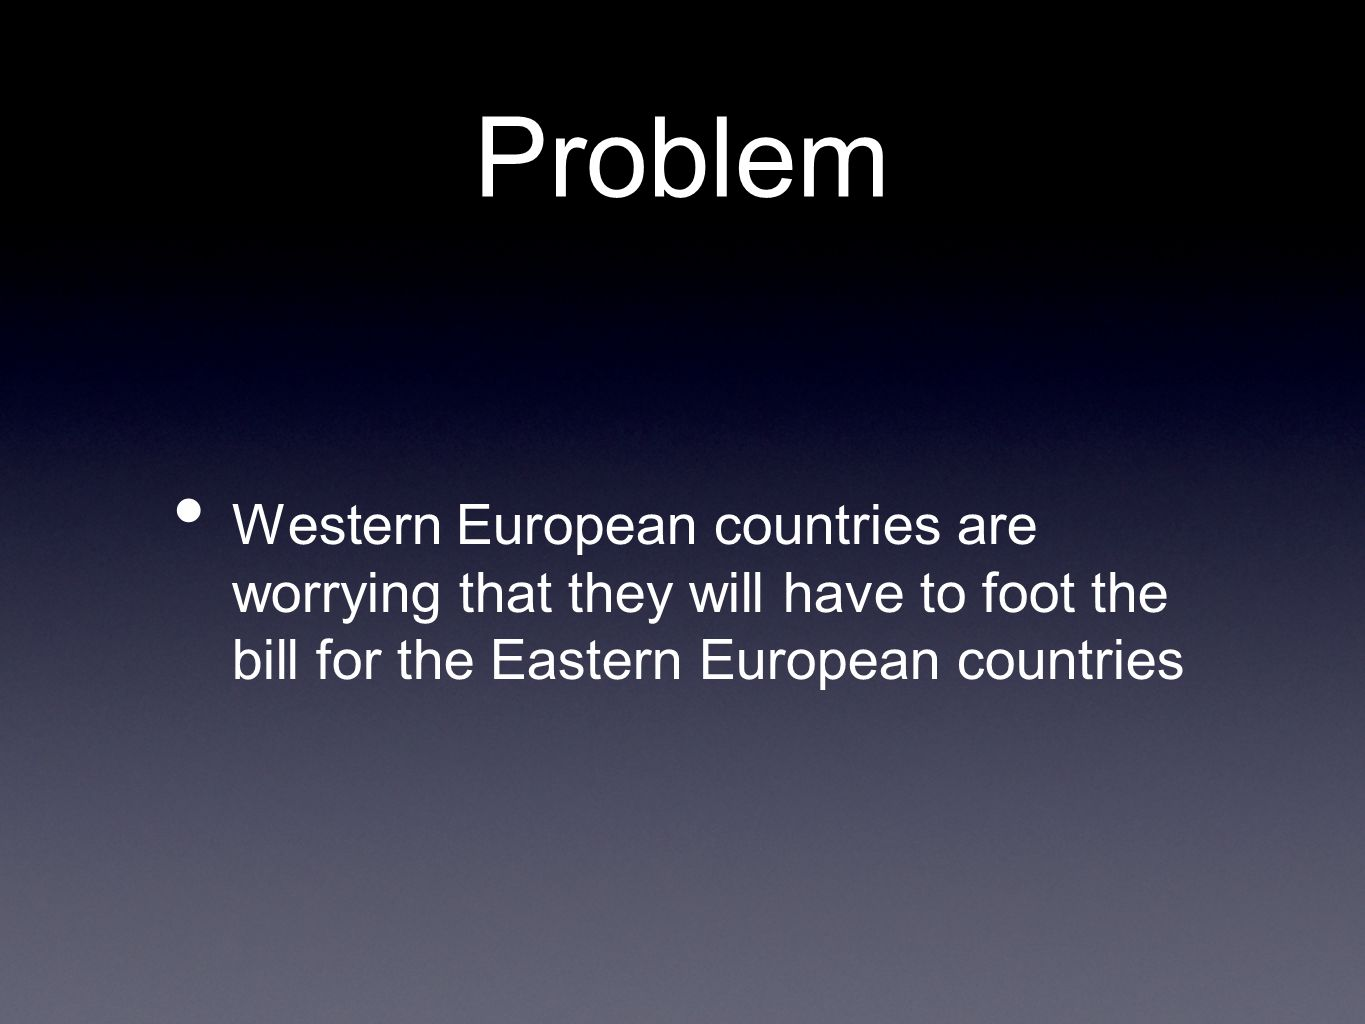 Problem Western European countries are worrying that they will have to foot the bill for the Eastern European countries